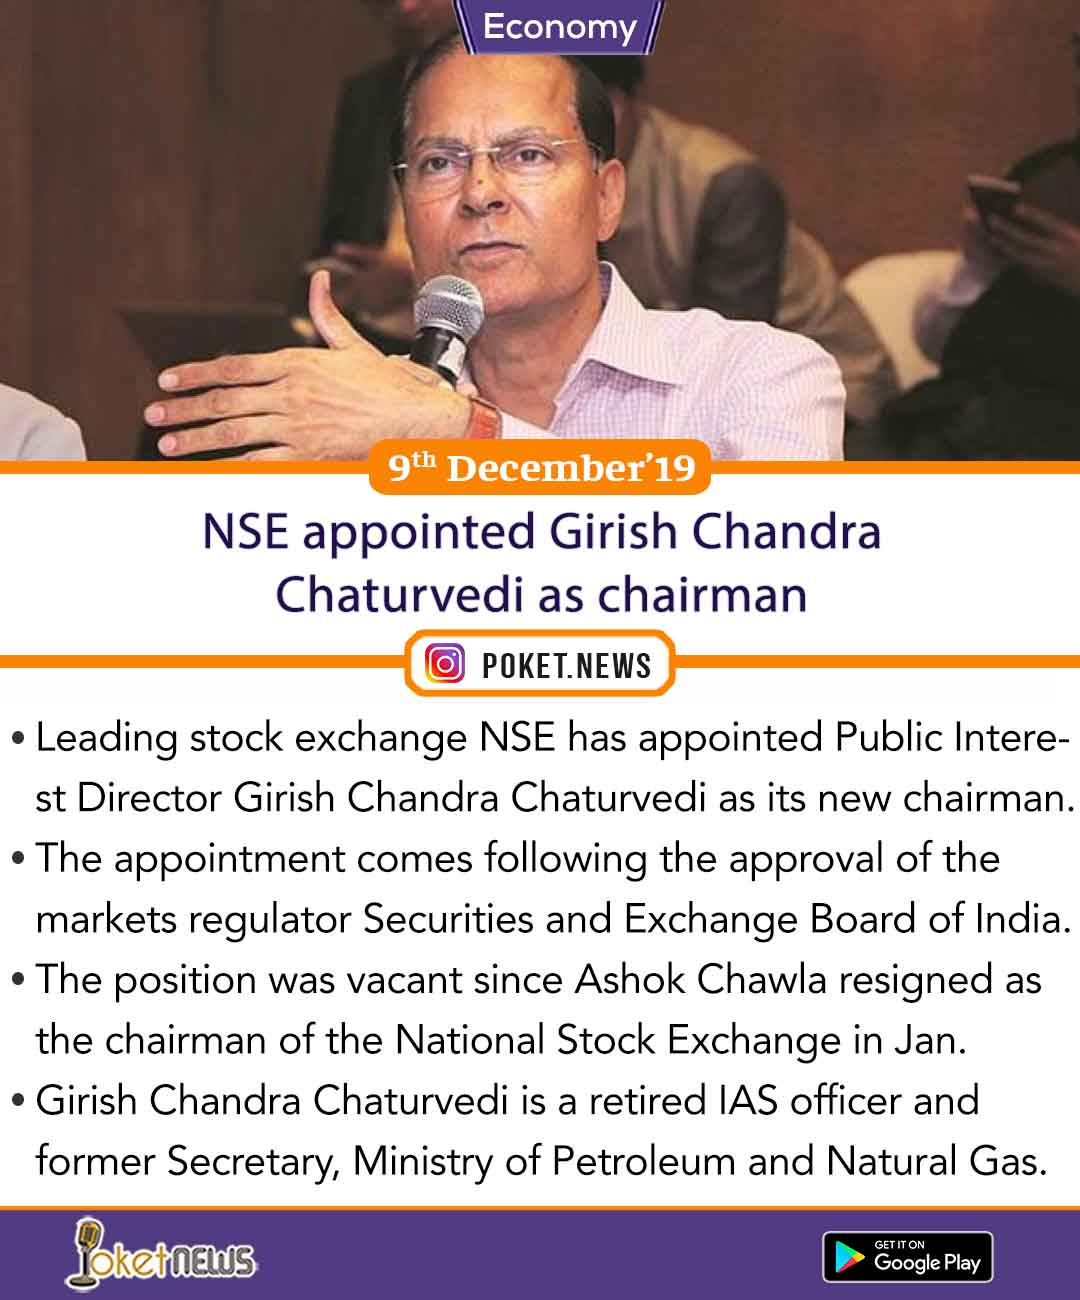 NSE appointed Girish Chandra Chaturvedi as chairman